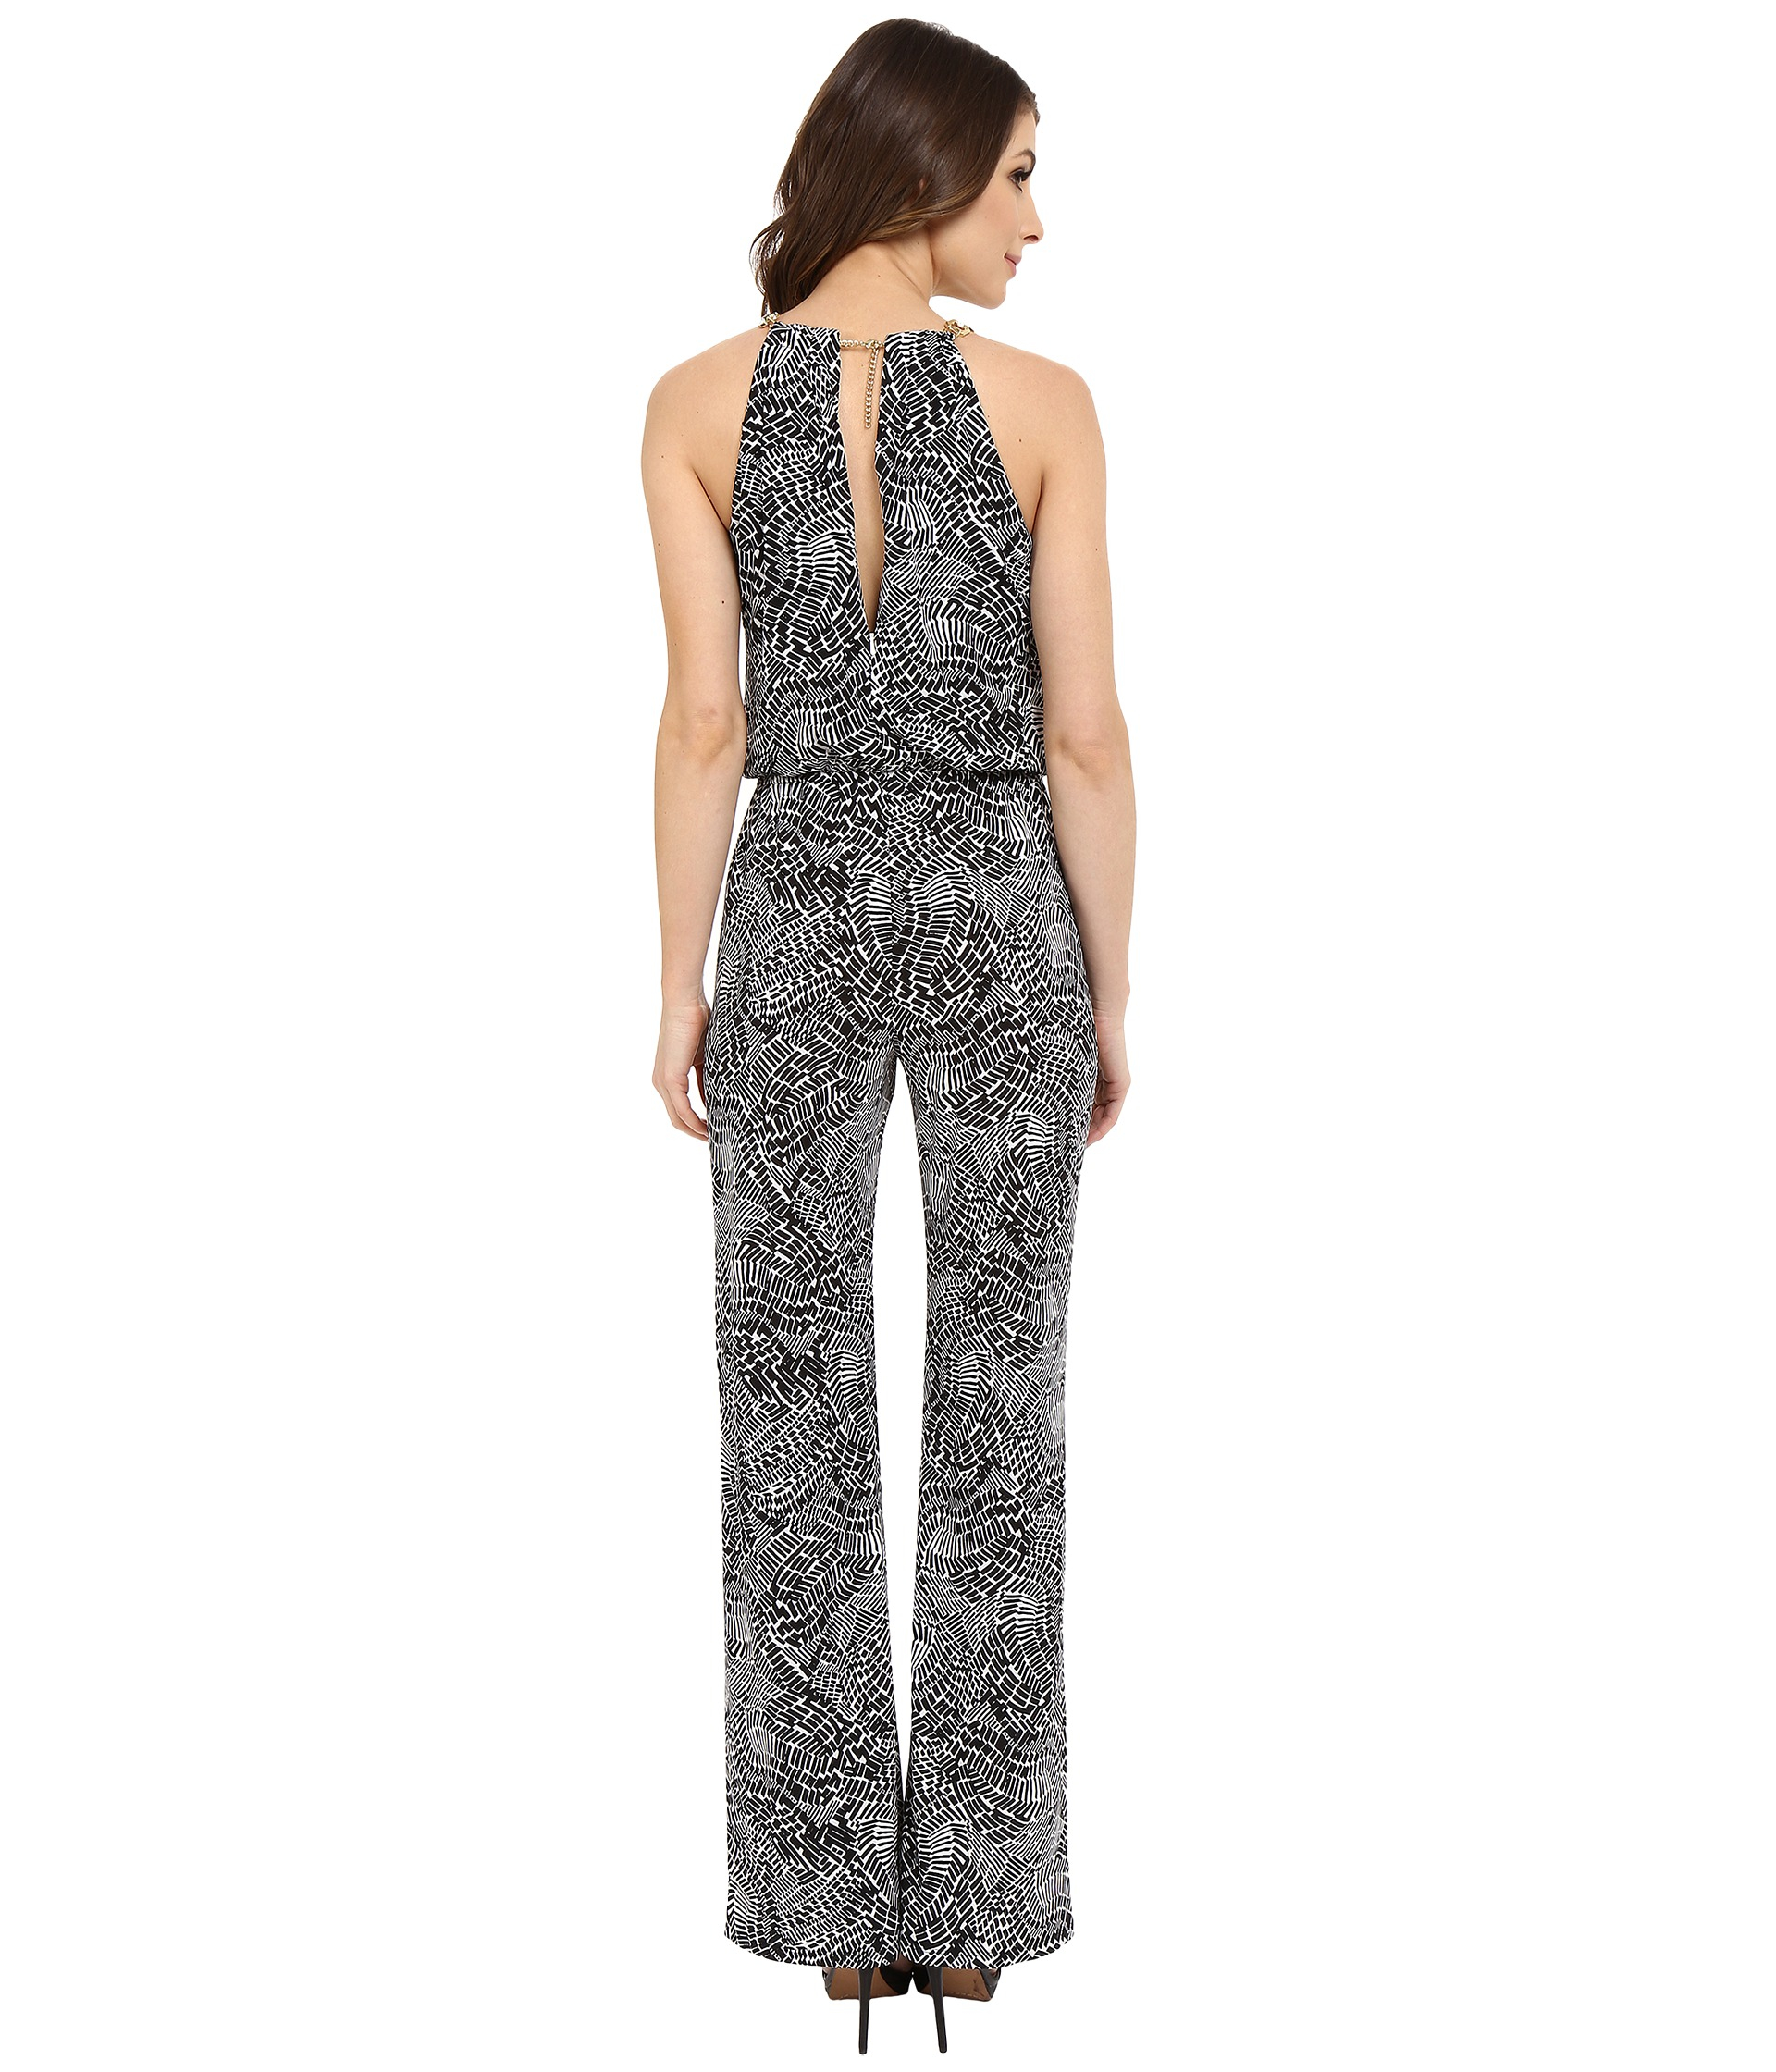 fef13a1c242 Lyst - Laundry By Shelli Segal Printed Matte Jersey Jumpsuit With ...